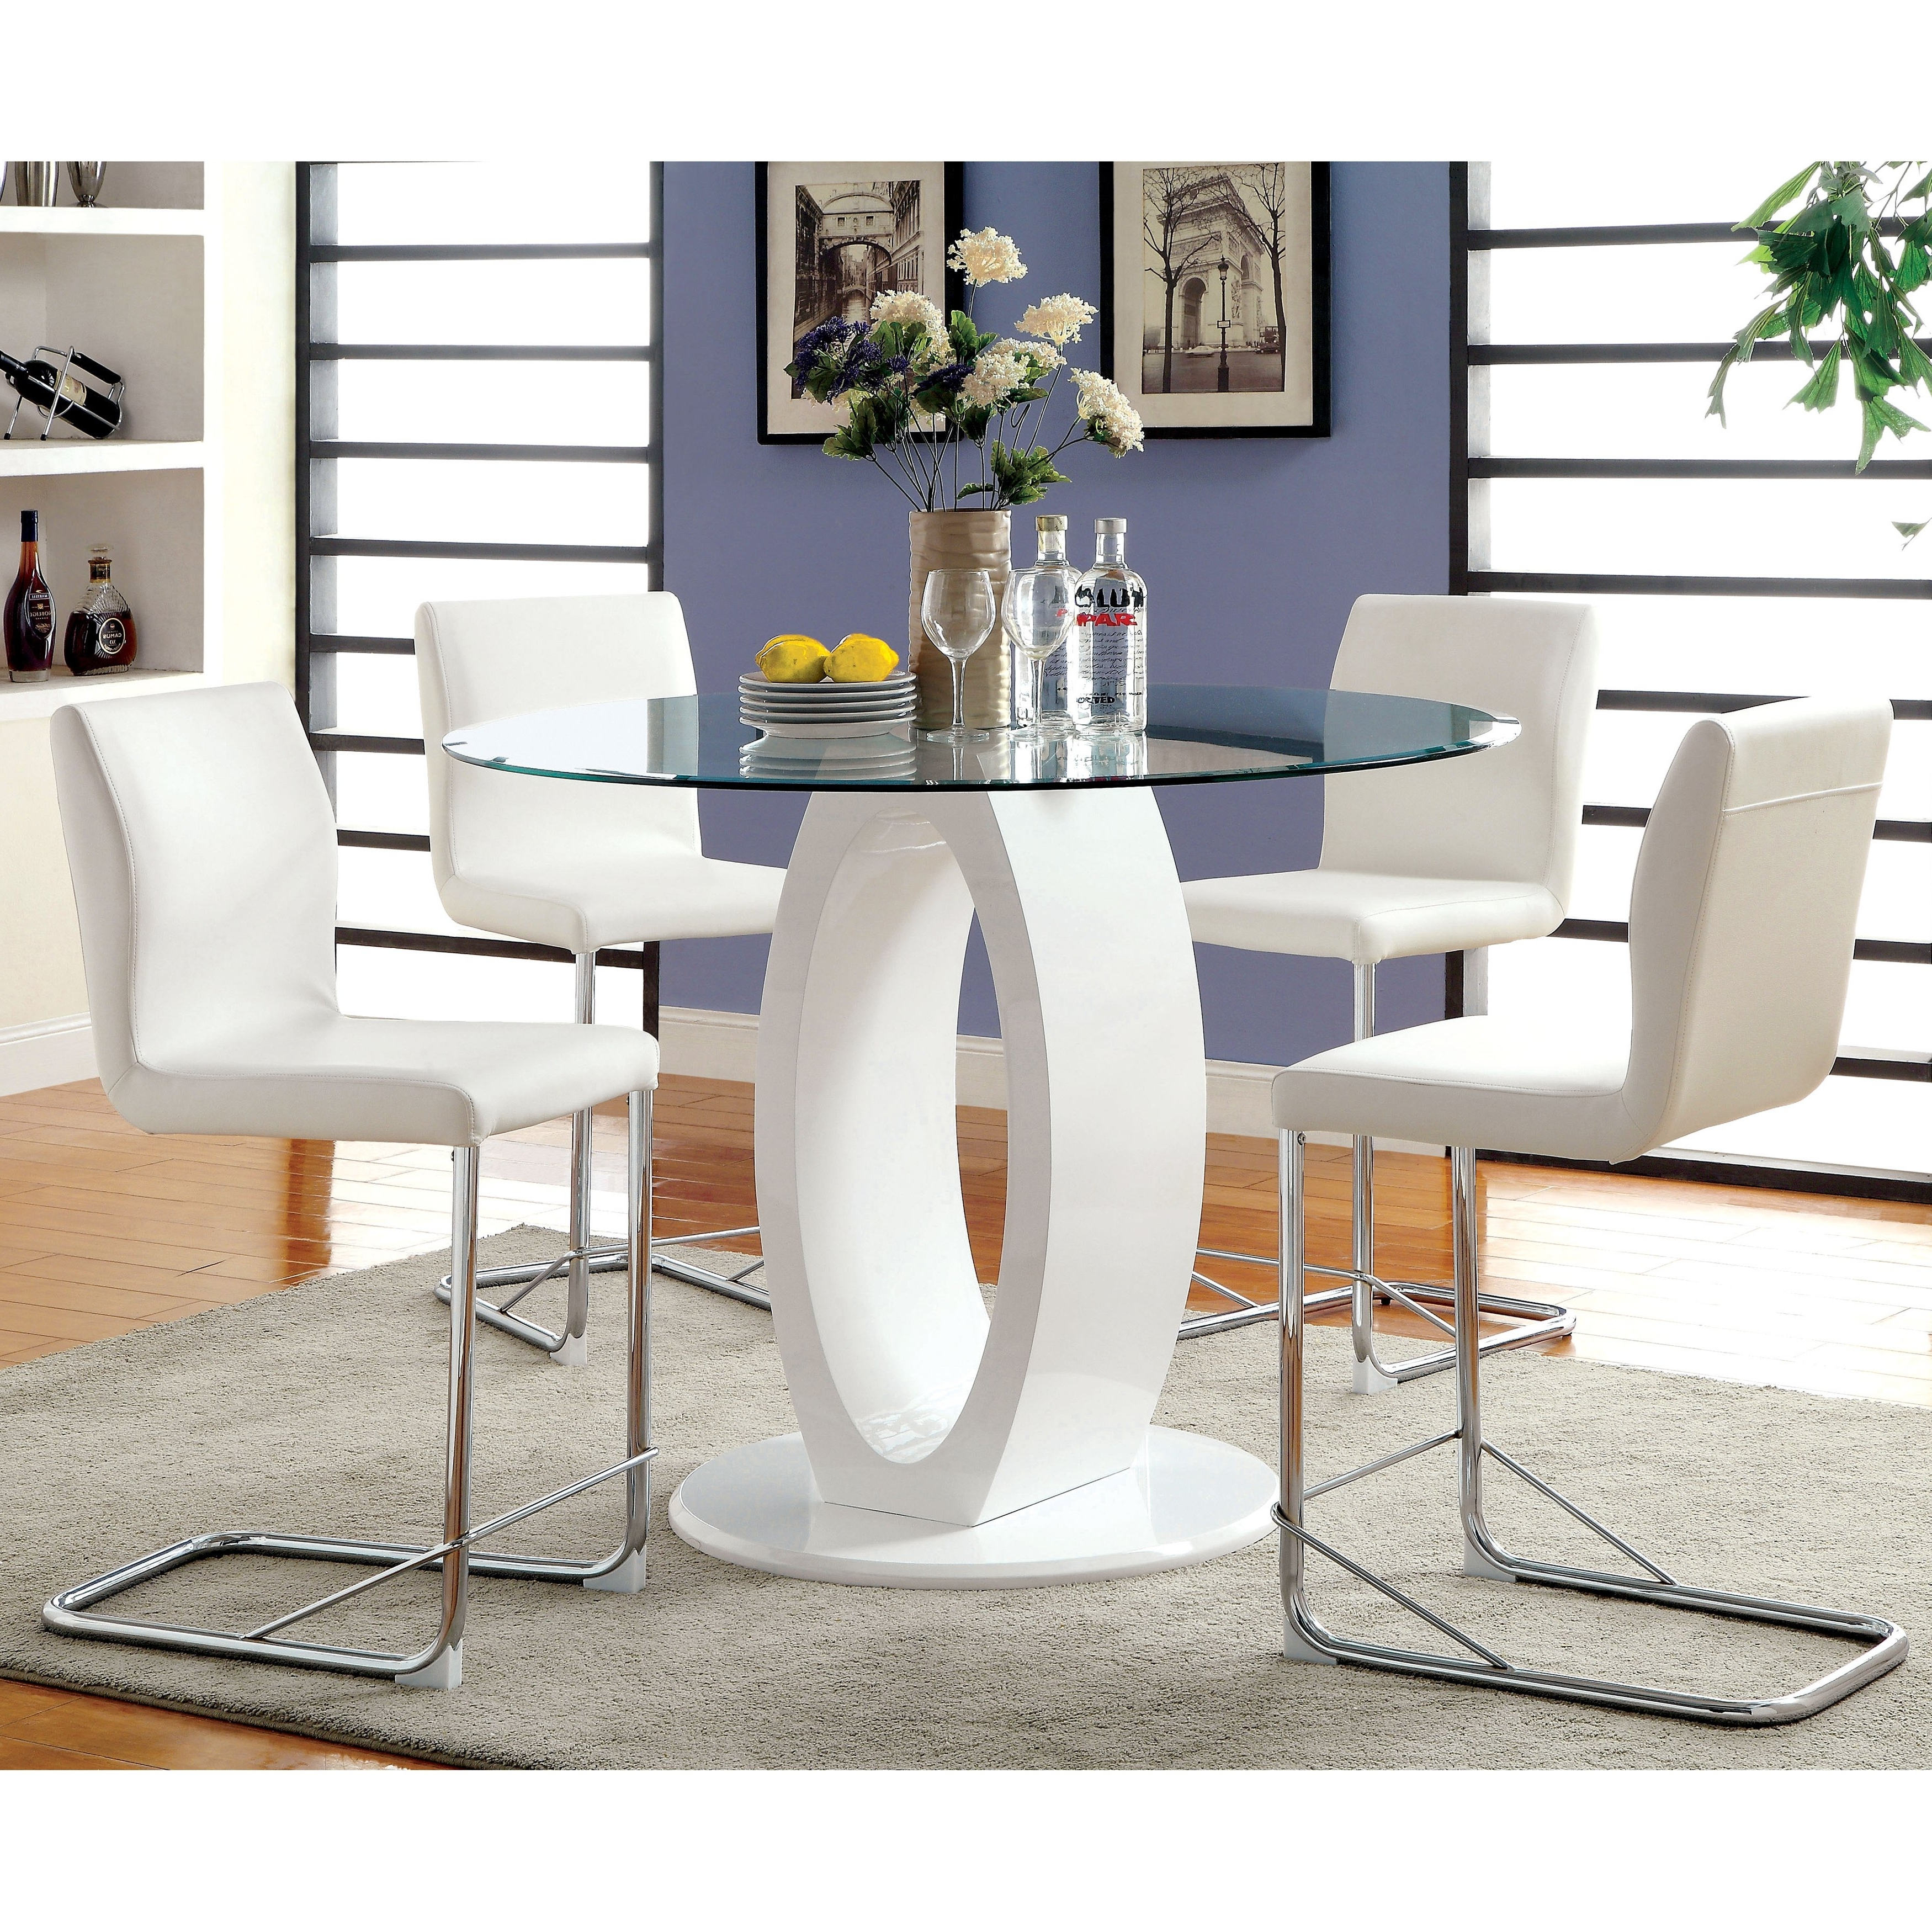 Most Current Shop Furniture Of America Olgette Contemporary High Gloss Round Regarding Oval White High Gloss Dining Tables (View 10 of 25)